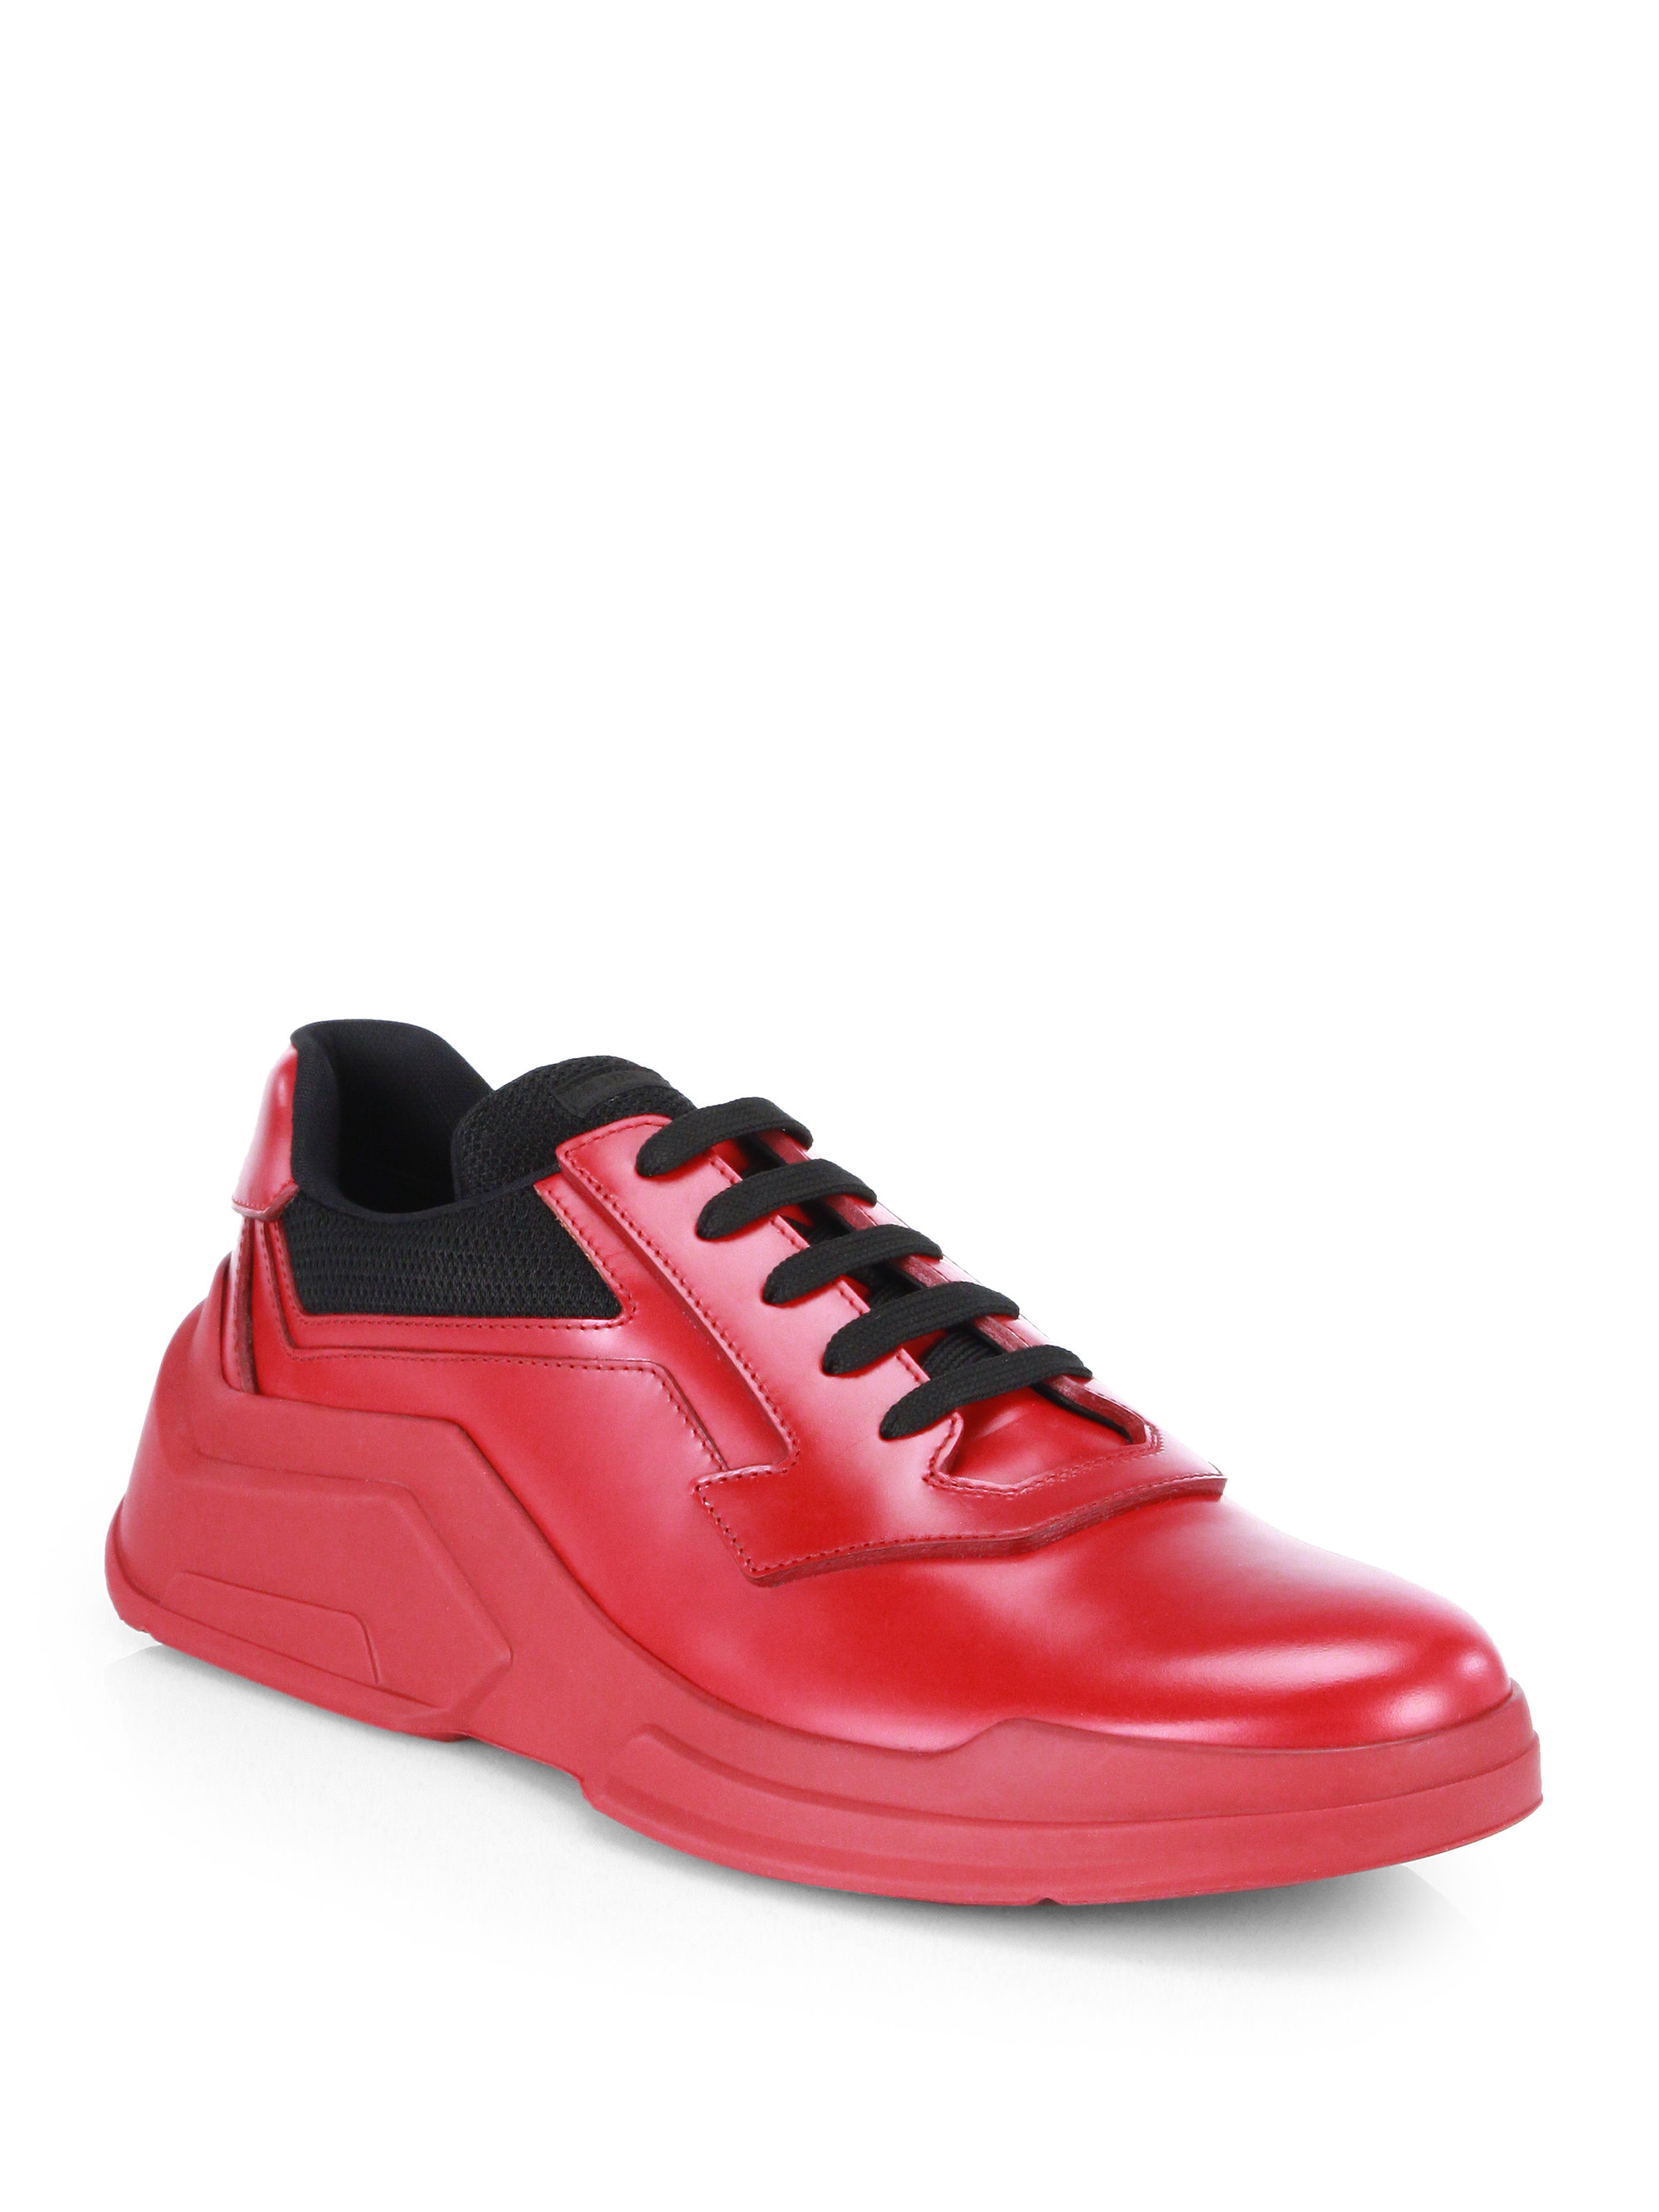 Prada Spazzolato Laced Runway Sneakers in Red for Men | Lyst